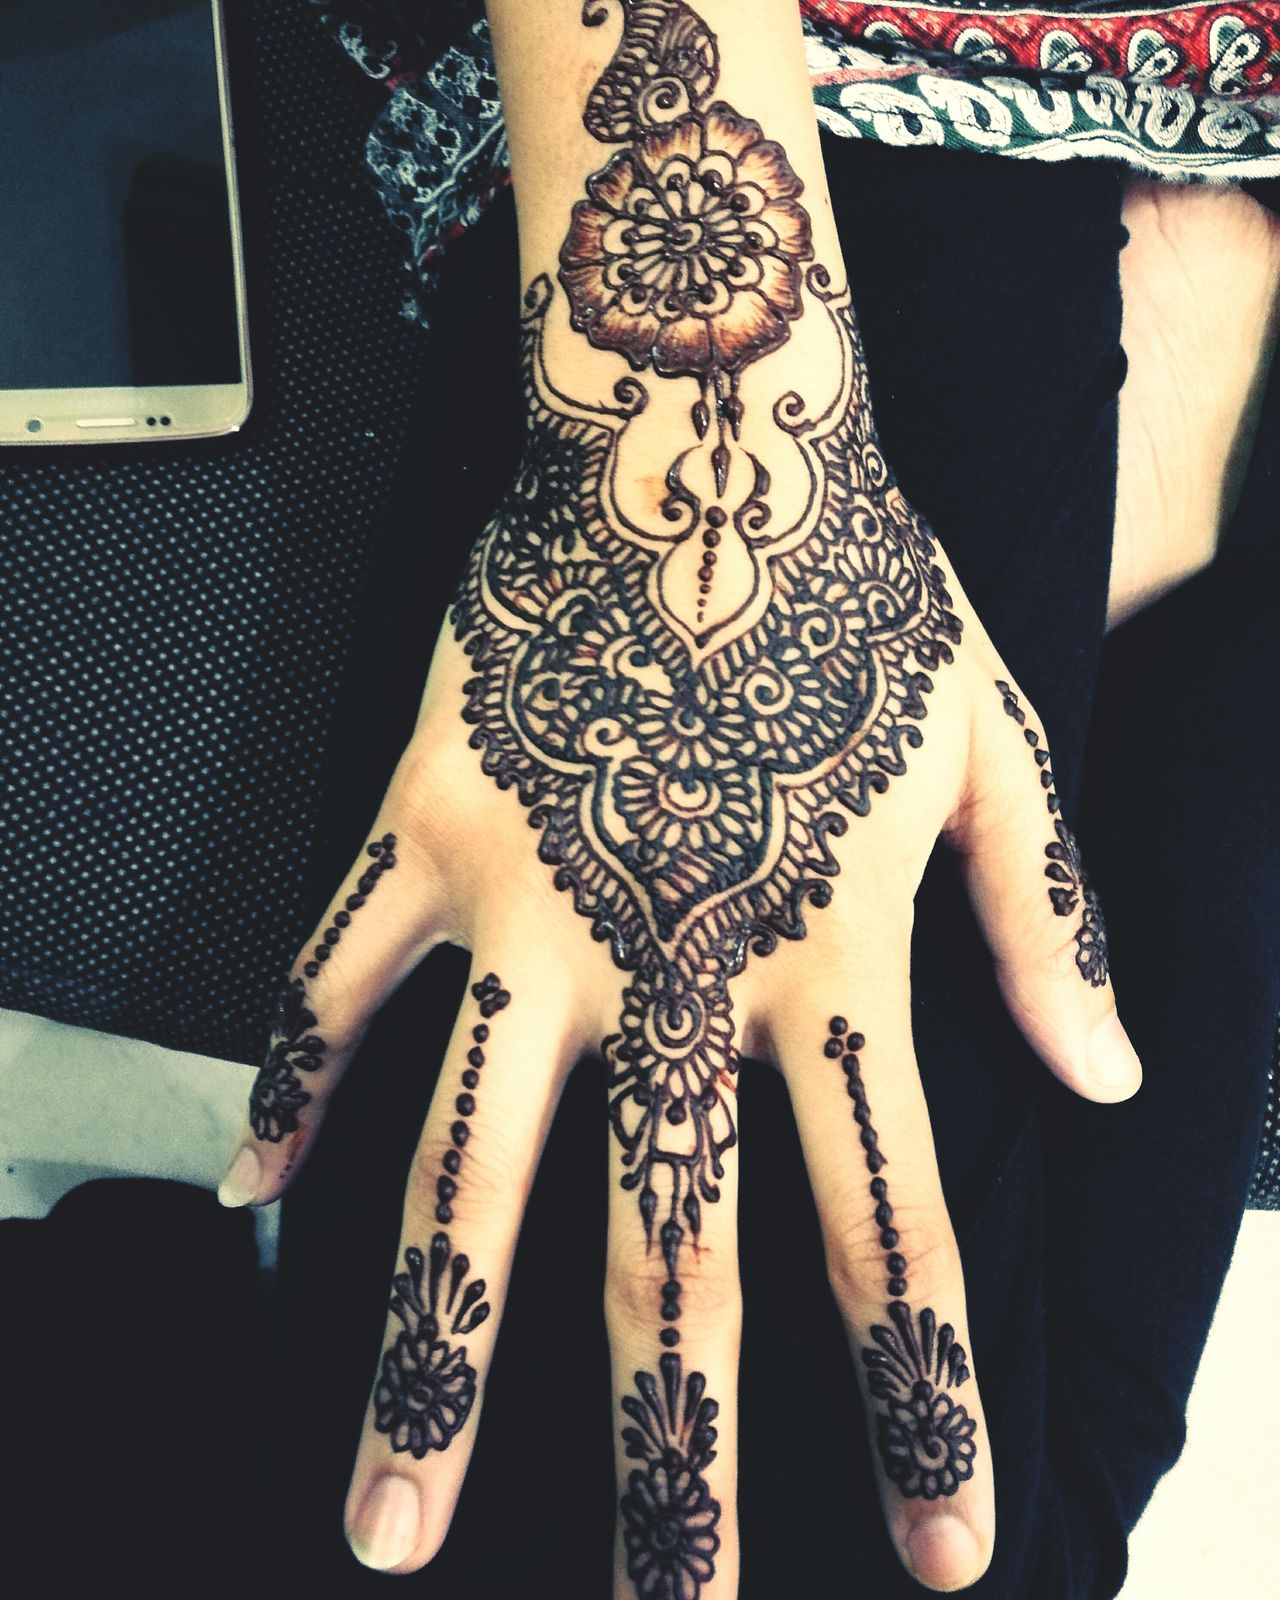 Person Tattoo Indoors  Fashion Culture Front View Henna Tattoo Femininity Fashionable Funky Person Artist ArtWork Pakistani Kuwait Kuwait❤ Kuwaitinstagram Kuwaitphoto Talent Henna Tattoo ❤ Henna Design Henna Artist Mehendi First Eyeem Photo